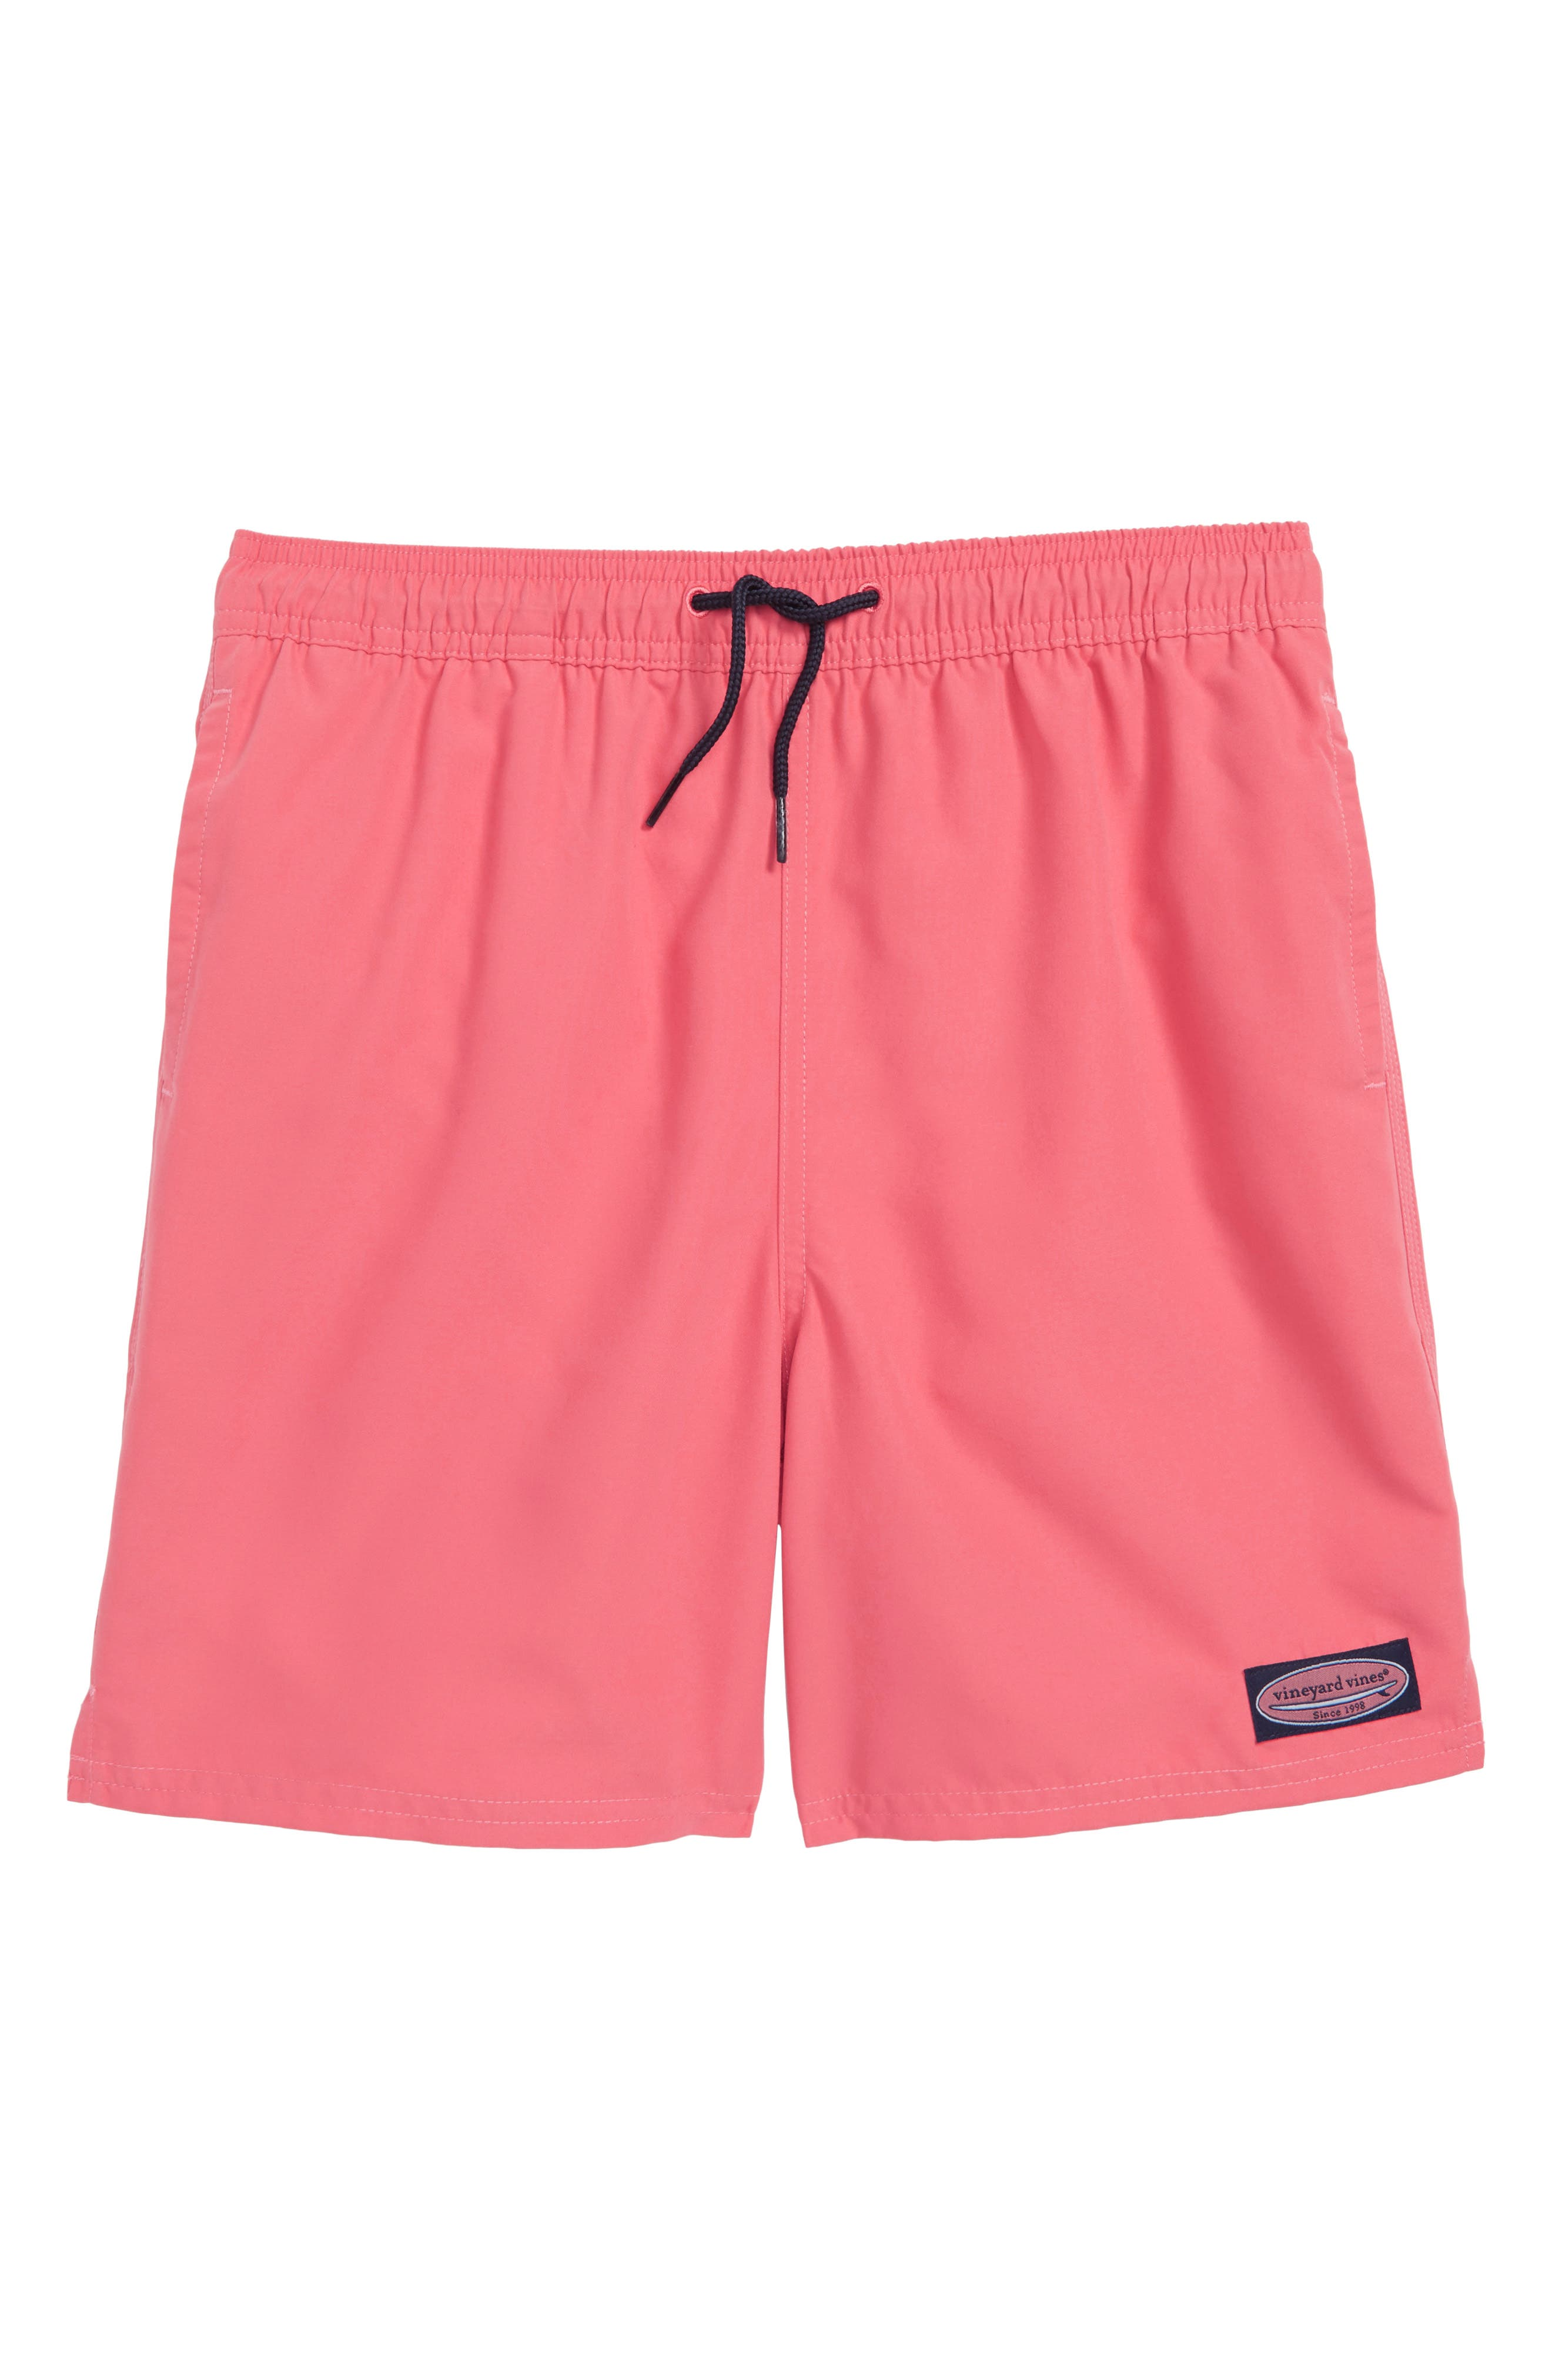 Bungalow Board Shorts,                         Main,                         color, LOBSTER REEF